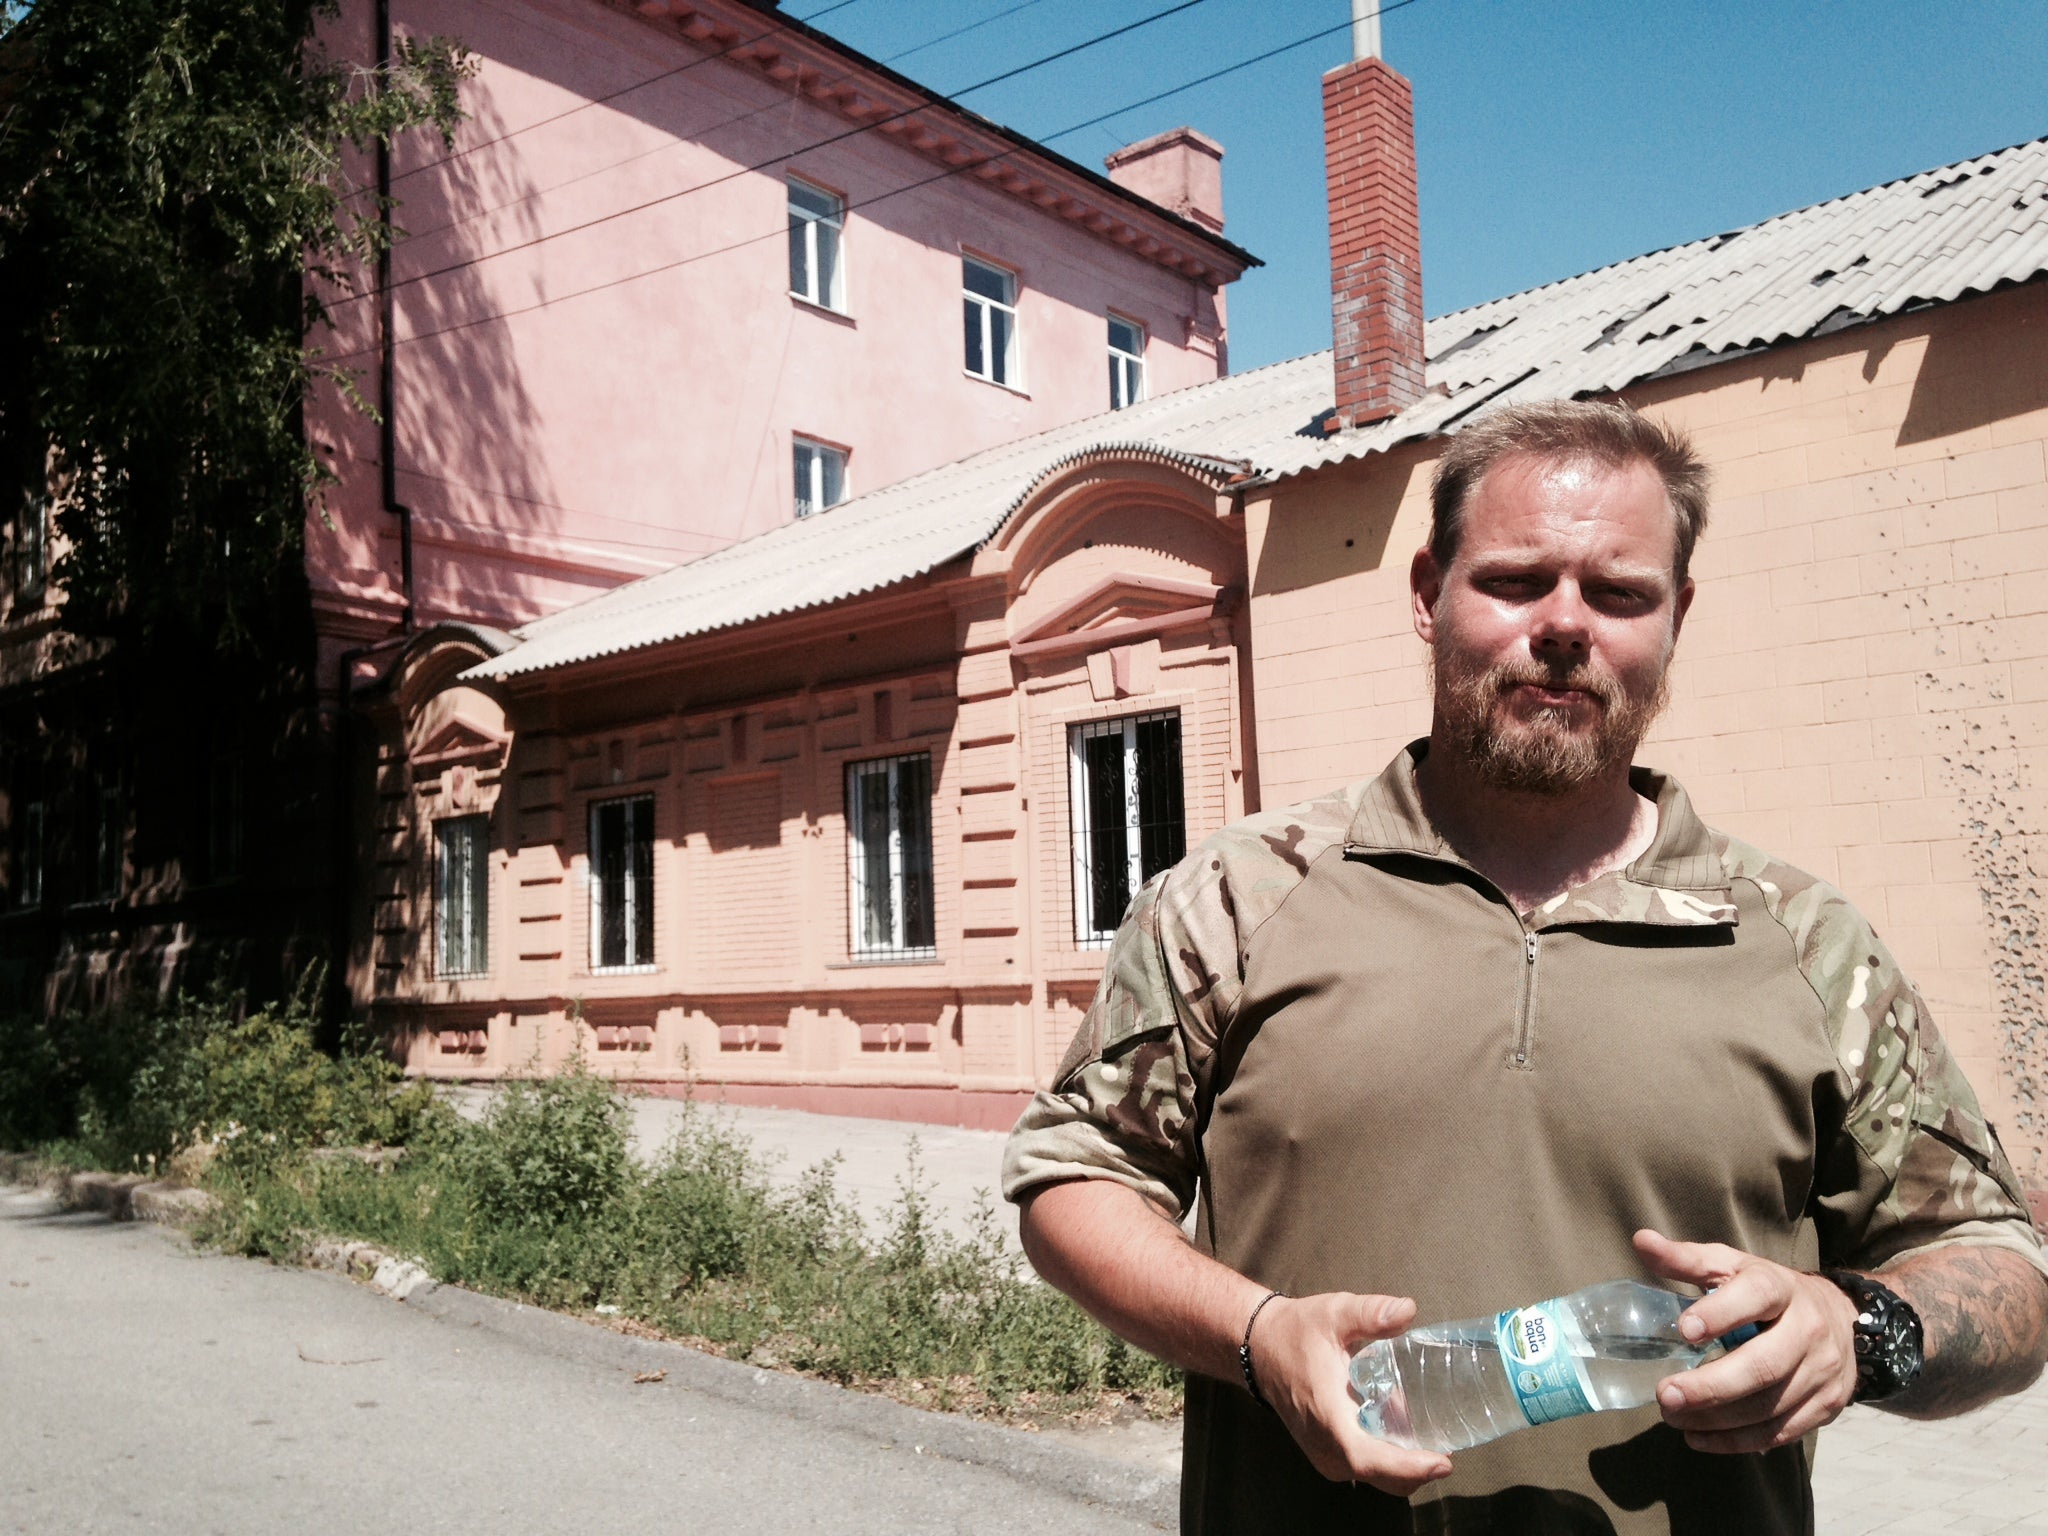 Skillt in Mariupol at the scene of his first battle. The school house and third-floor window are in the background. (Photo: Nolan Peterson/The Daily Signal)